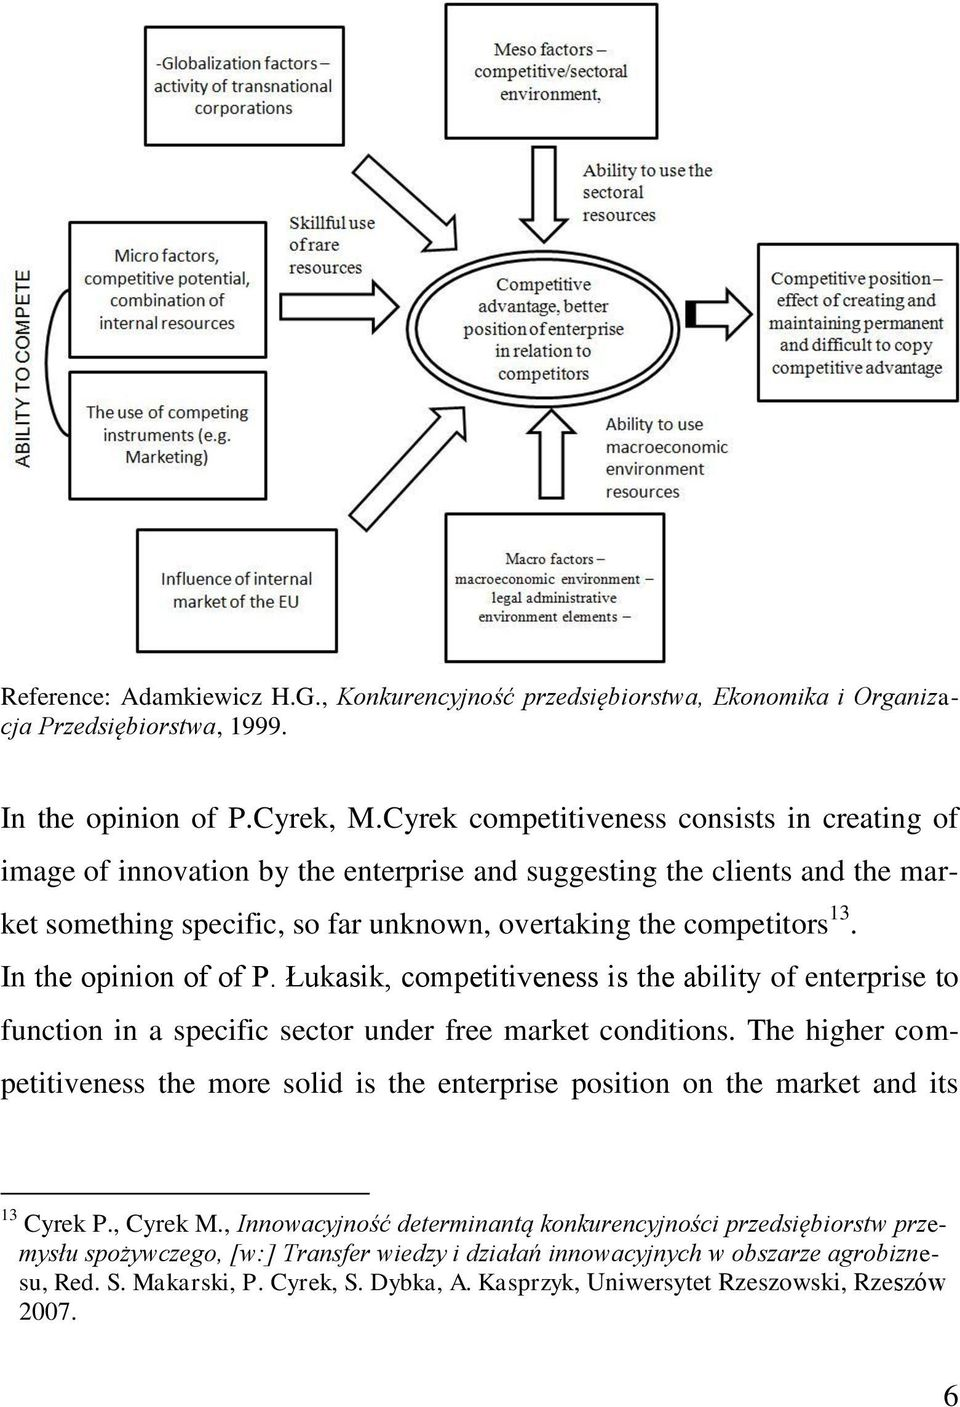 In the opinion of of P. Łukasik, competitiveness is the ability of enterprise to function in a specific sector under free market conditions.